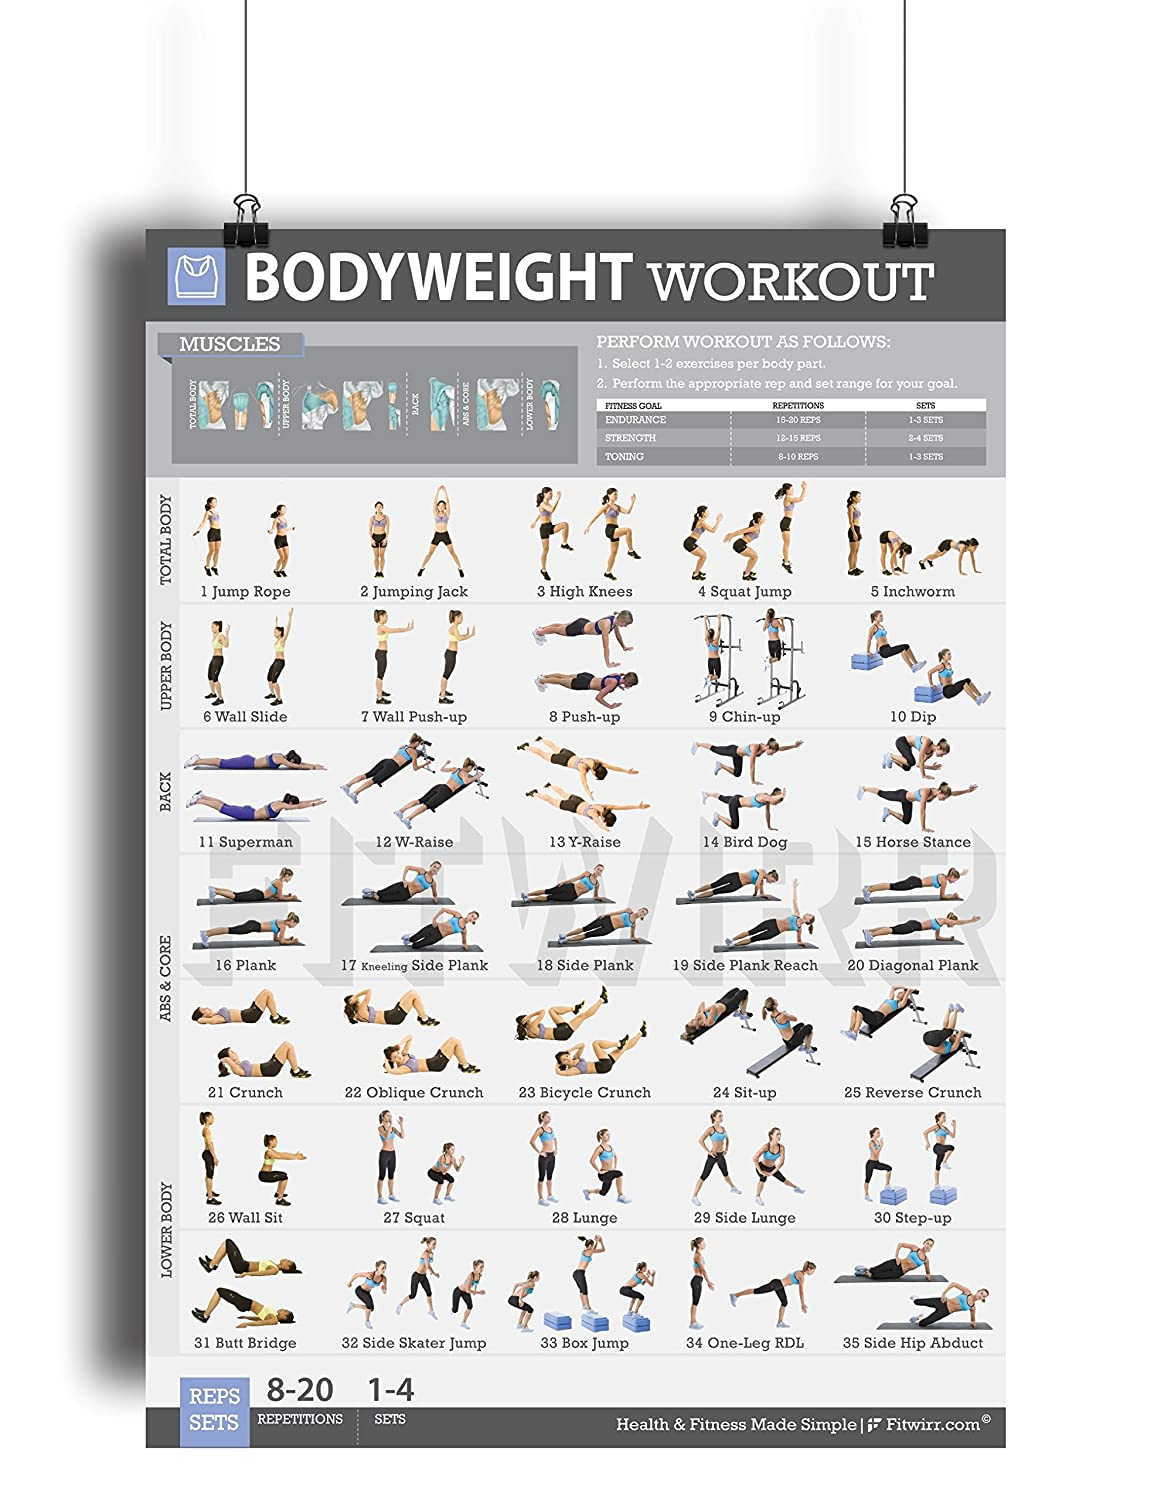 Bodyweight Exercise Poster Total Body Fitness Laminated Home Gym Workout Poster Bodyweight Exercises Tone Your Legs Arms Abs Core Butt